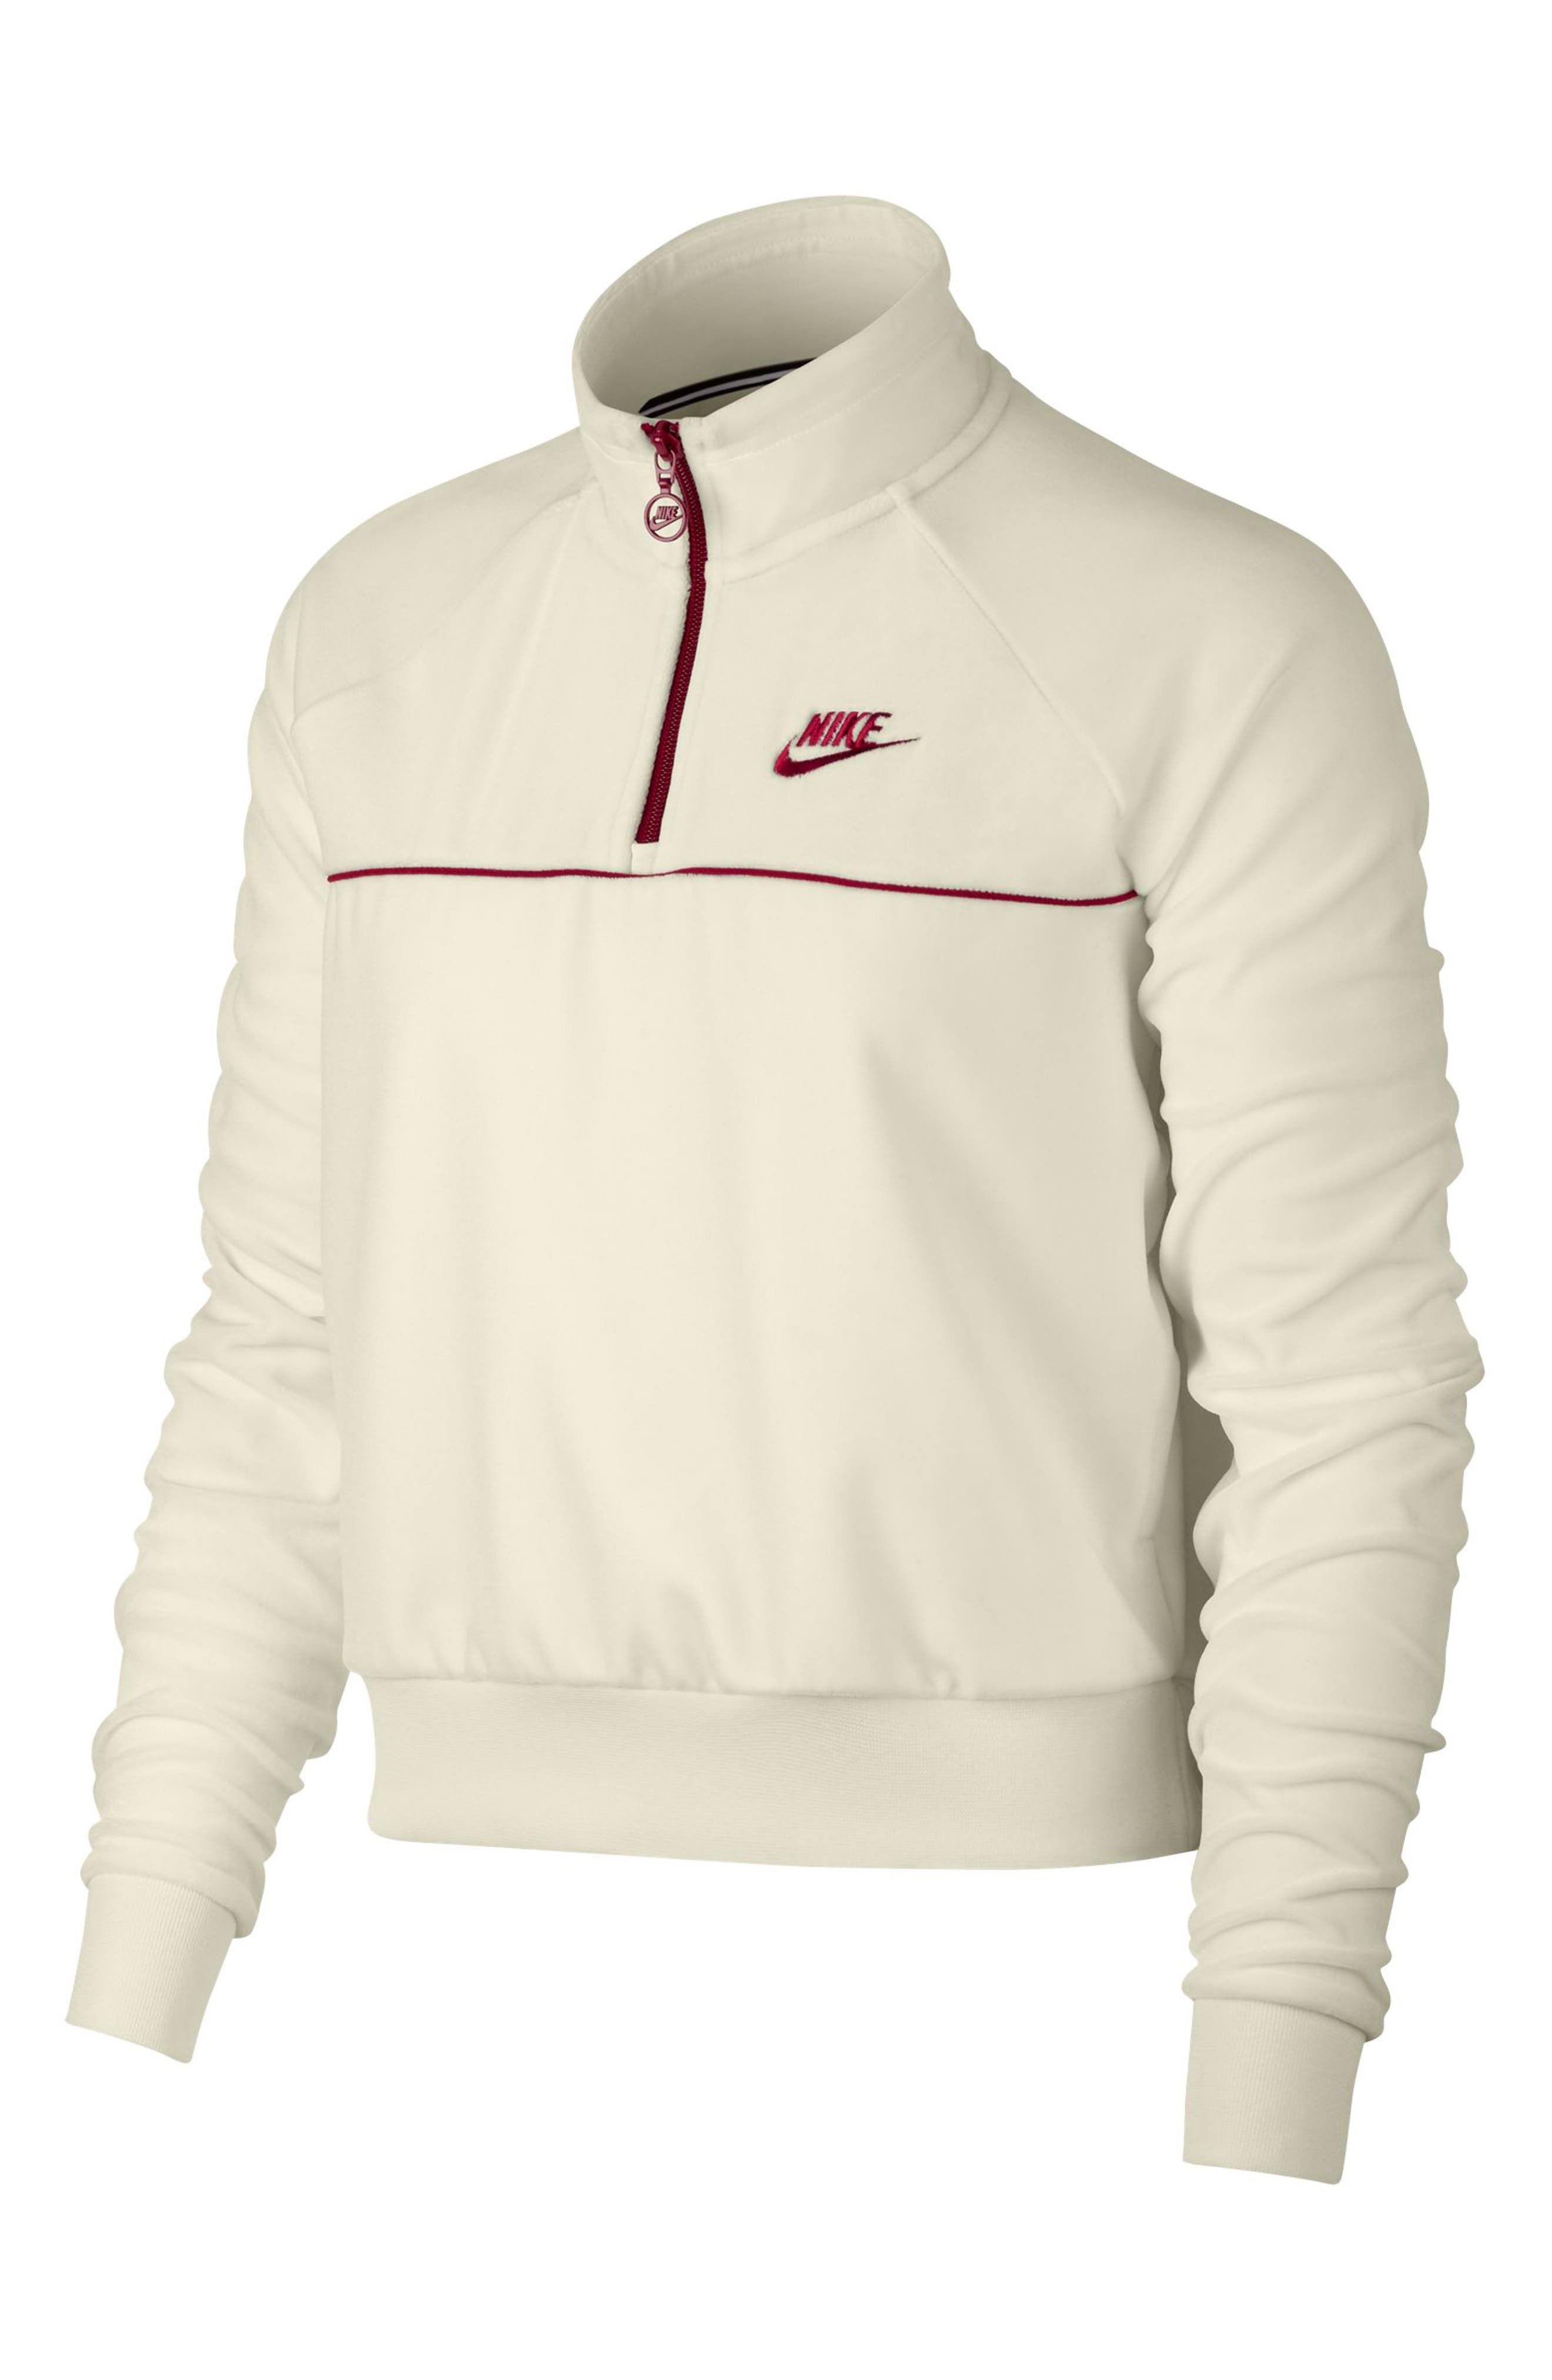 NIKE, Sportswear Quarter Zip Velour Pullover, Main thumbnail 1, color, SAIL/ RED CRUSH